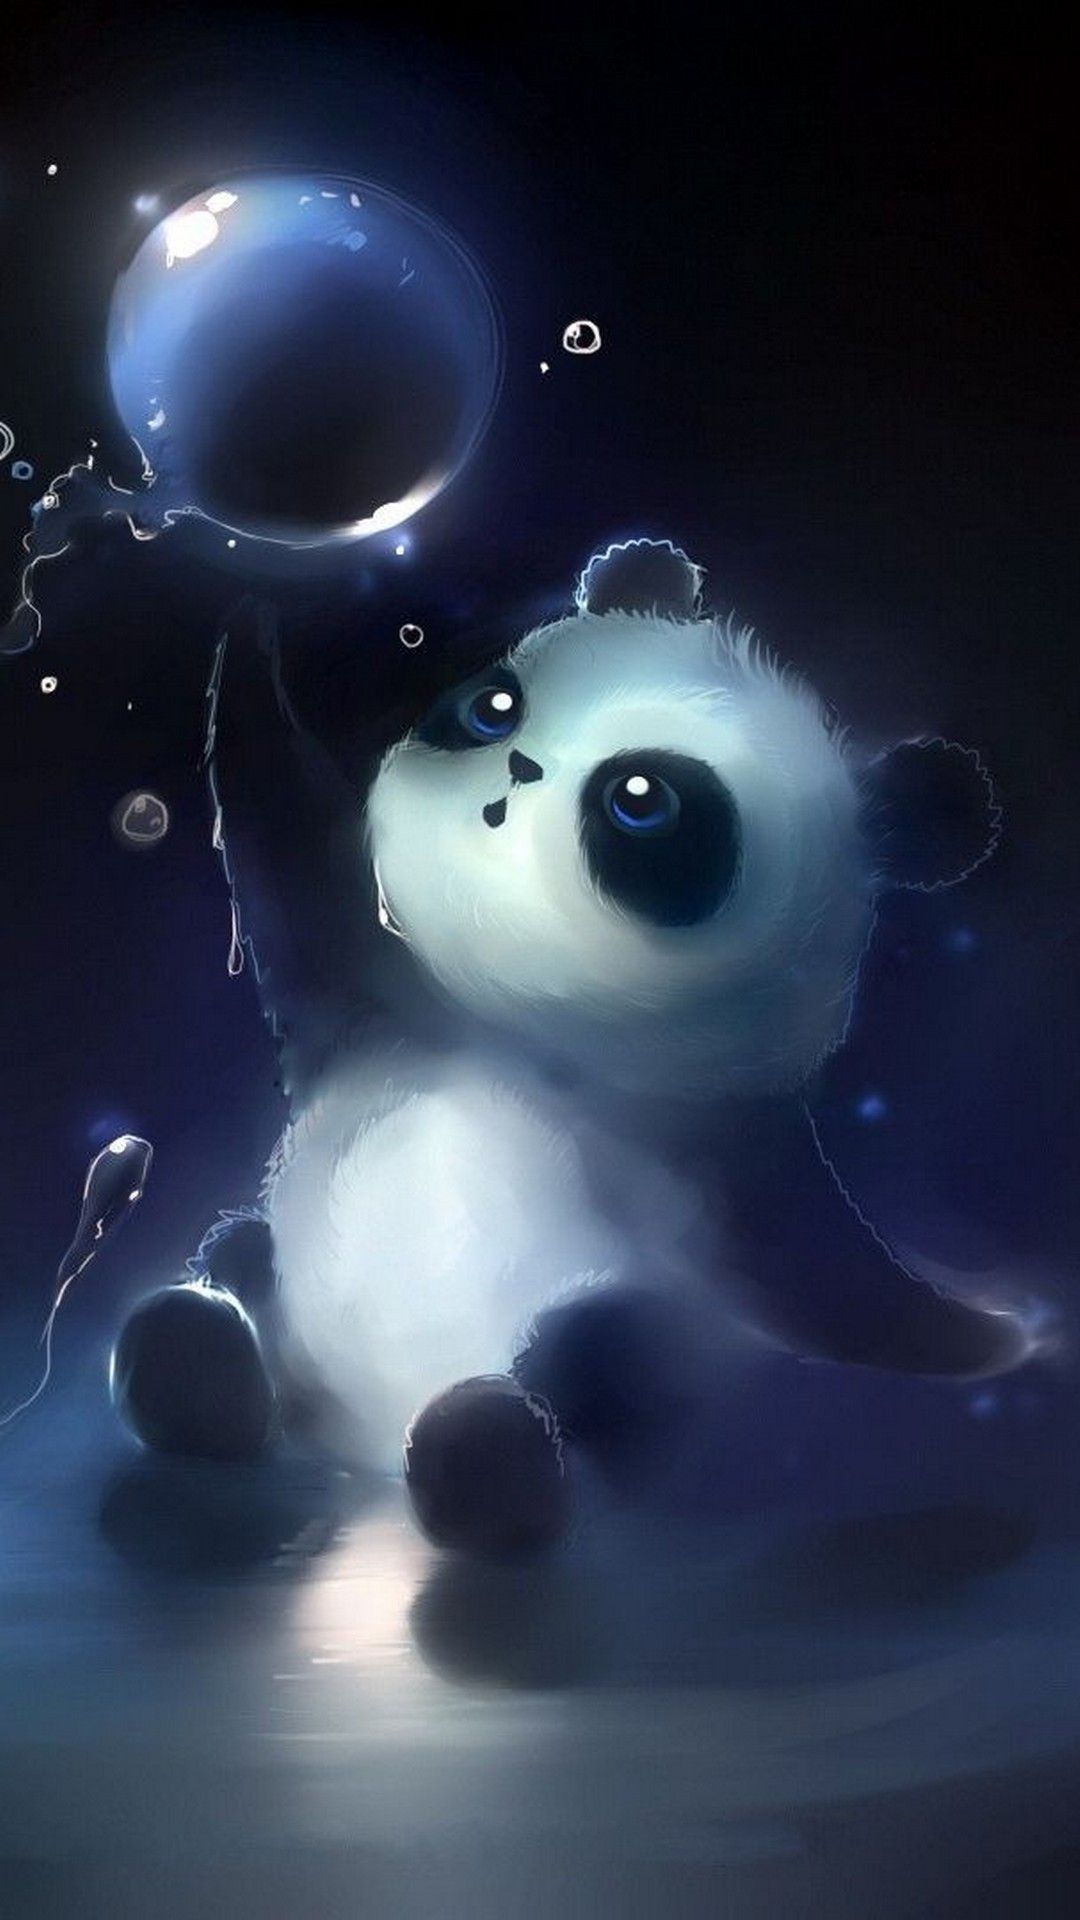 Android Wallpaper HD Baby Panda